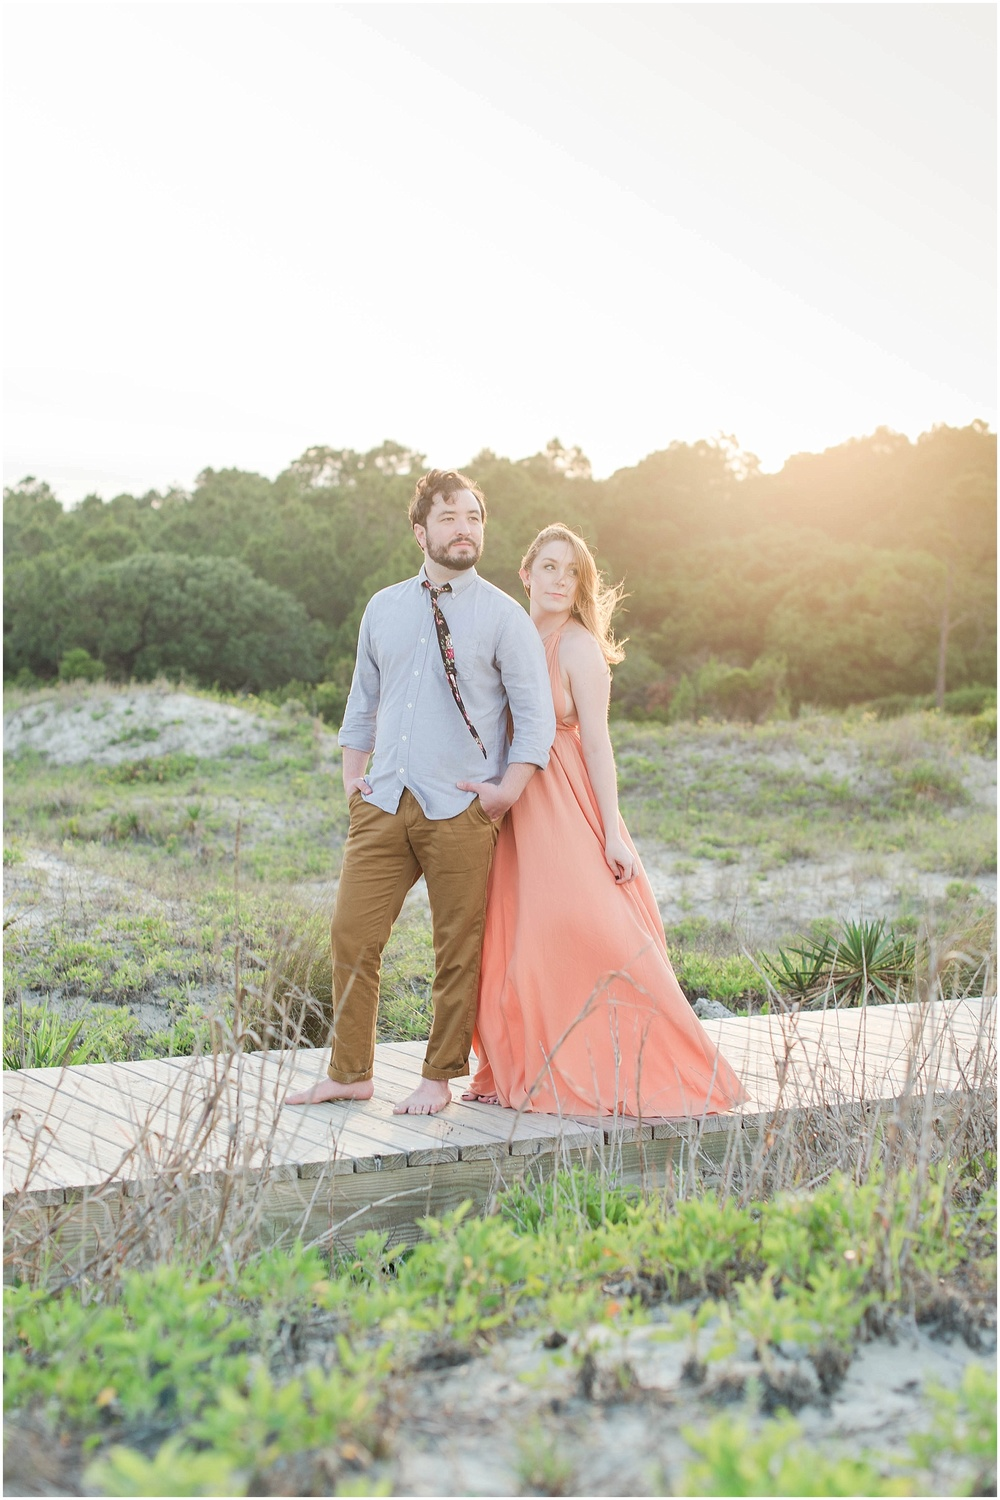 Hannah Leigh Photography Kiawah Island Anniversary Session_0406.jpg